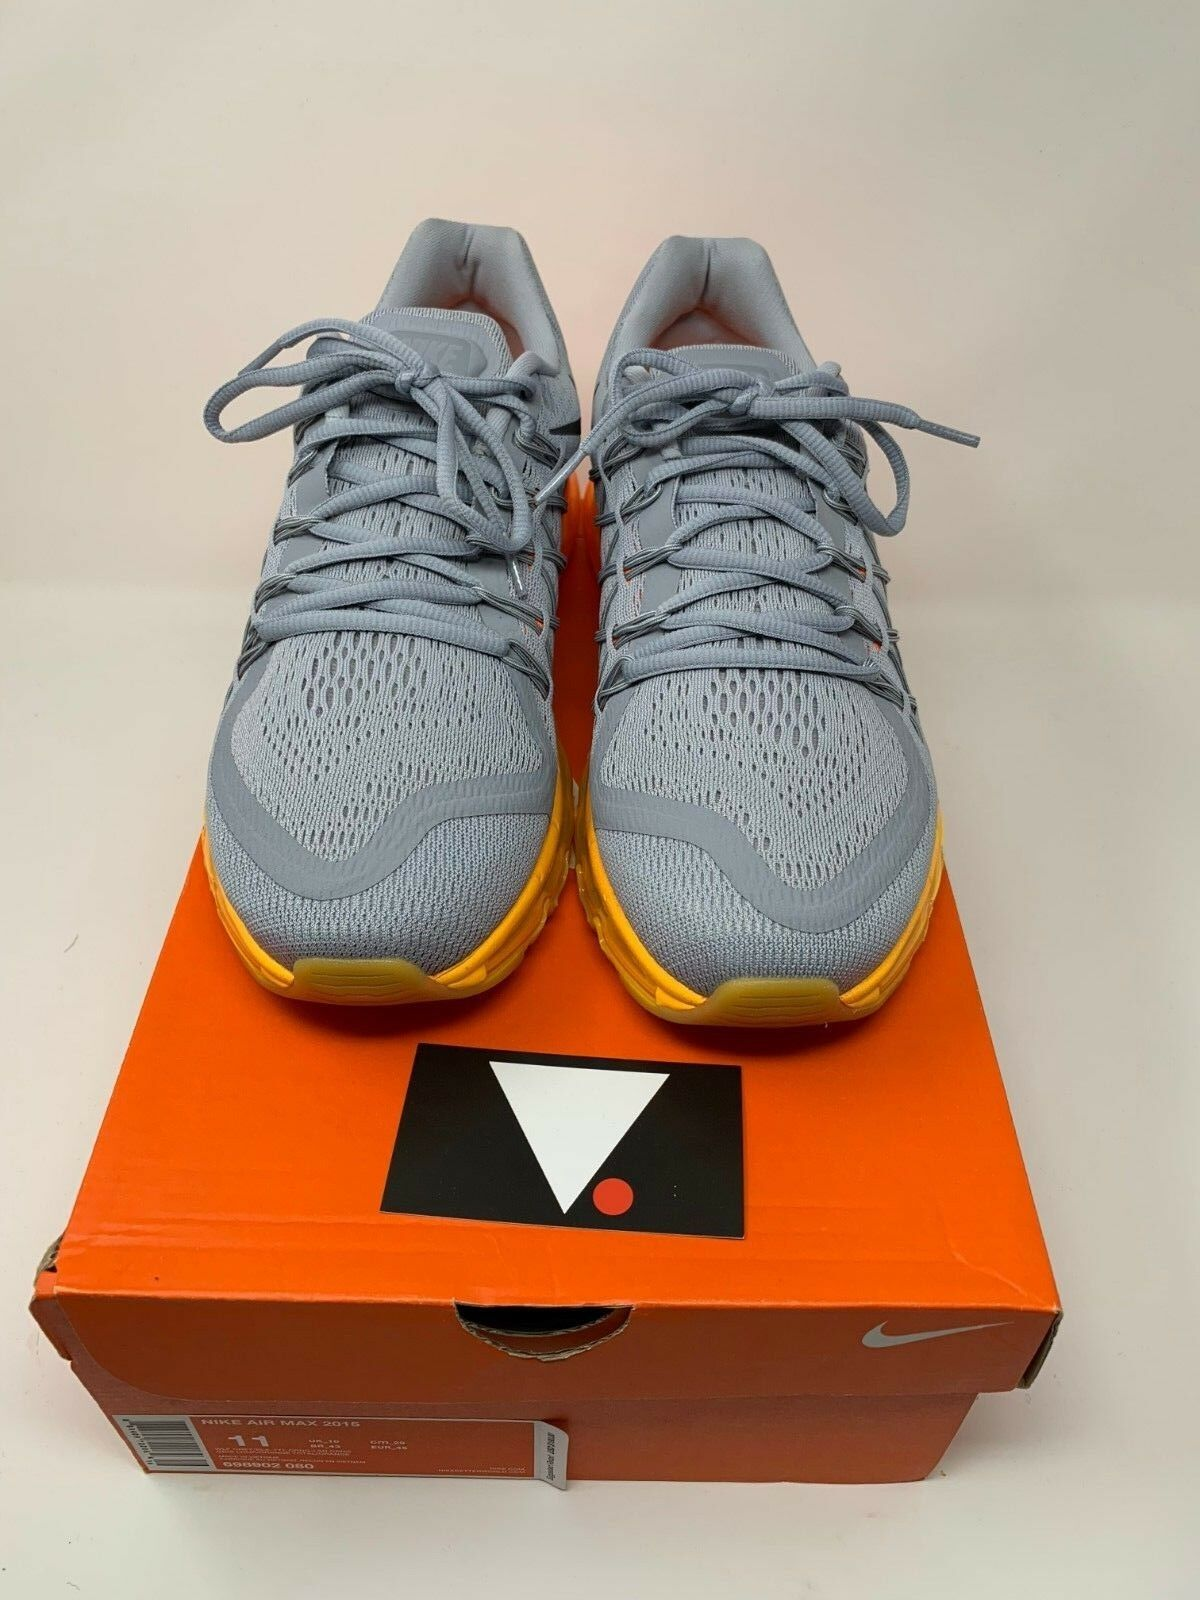 Nike Air Max 2015 Wolf Grey Total orange  698902 080 REACT PRESTO PEGASUS